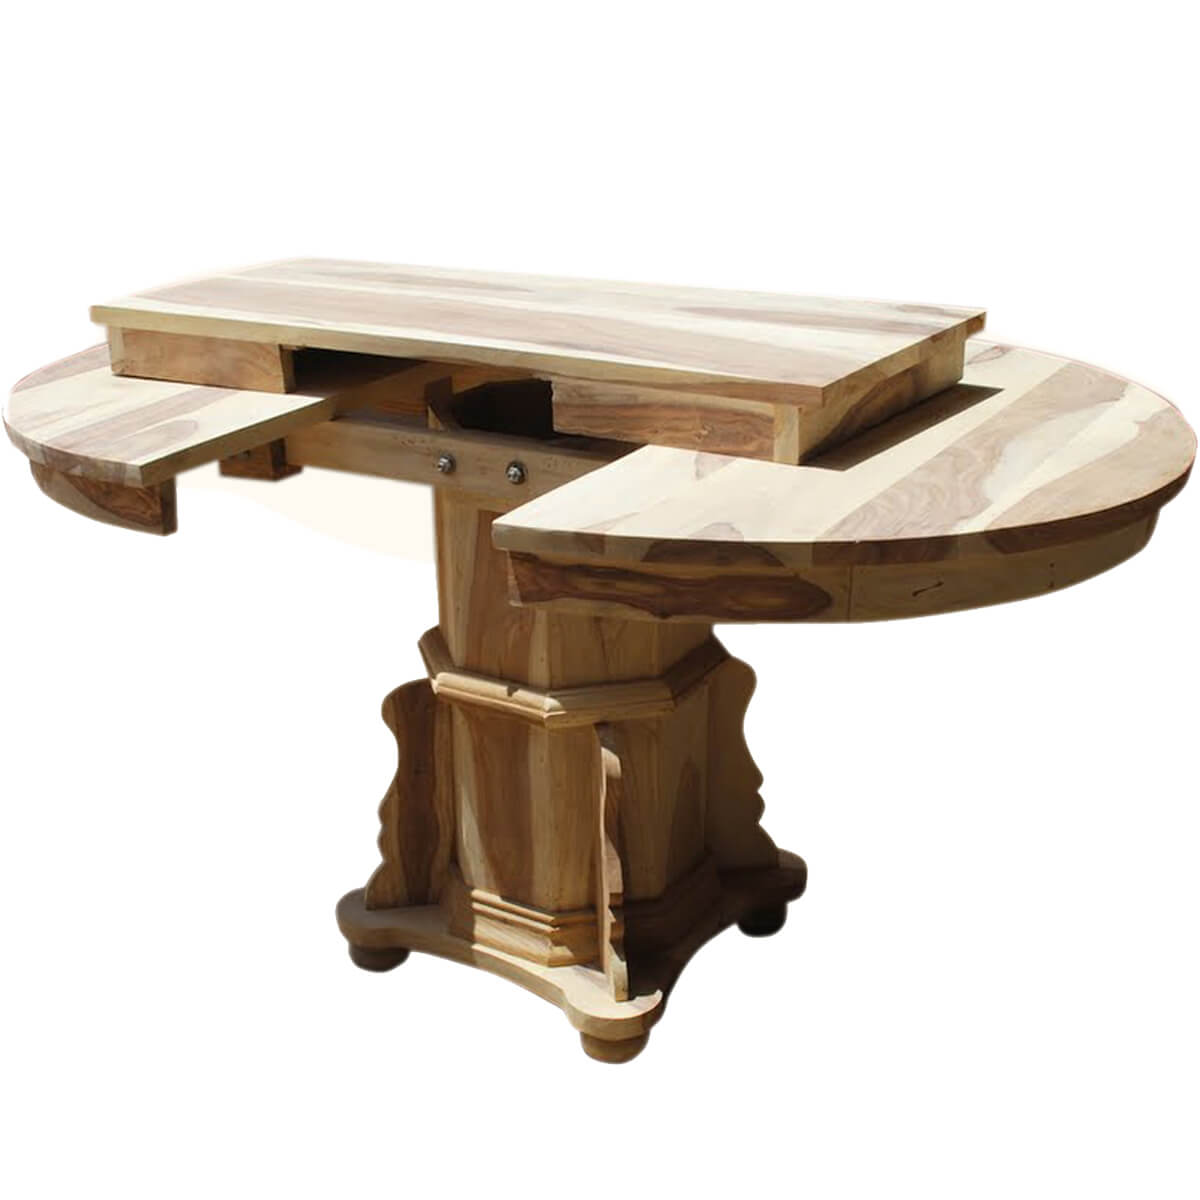 Dallas Ranch Solid Wood Pedestal Round Dining Table w  : 71203 from www.sierralivingconcepts.com size 1200 x 1200 jpeg 349kB